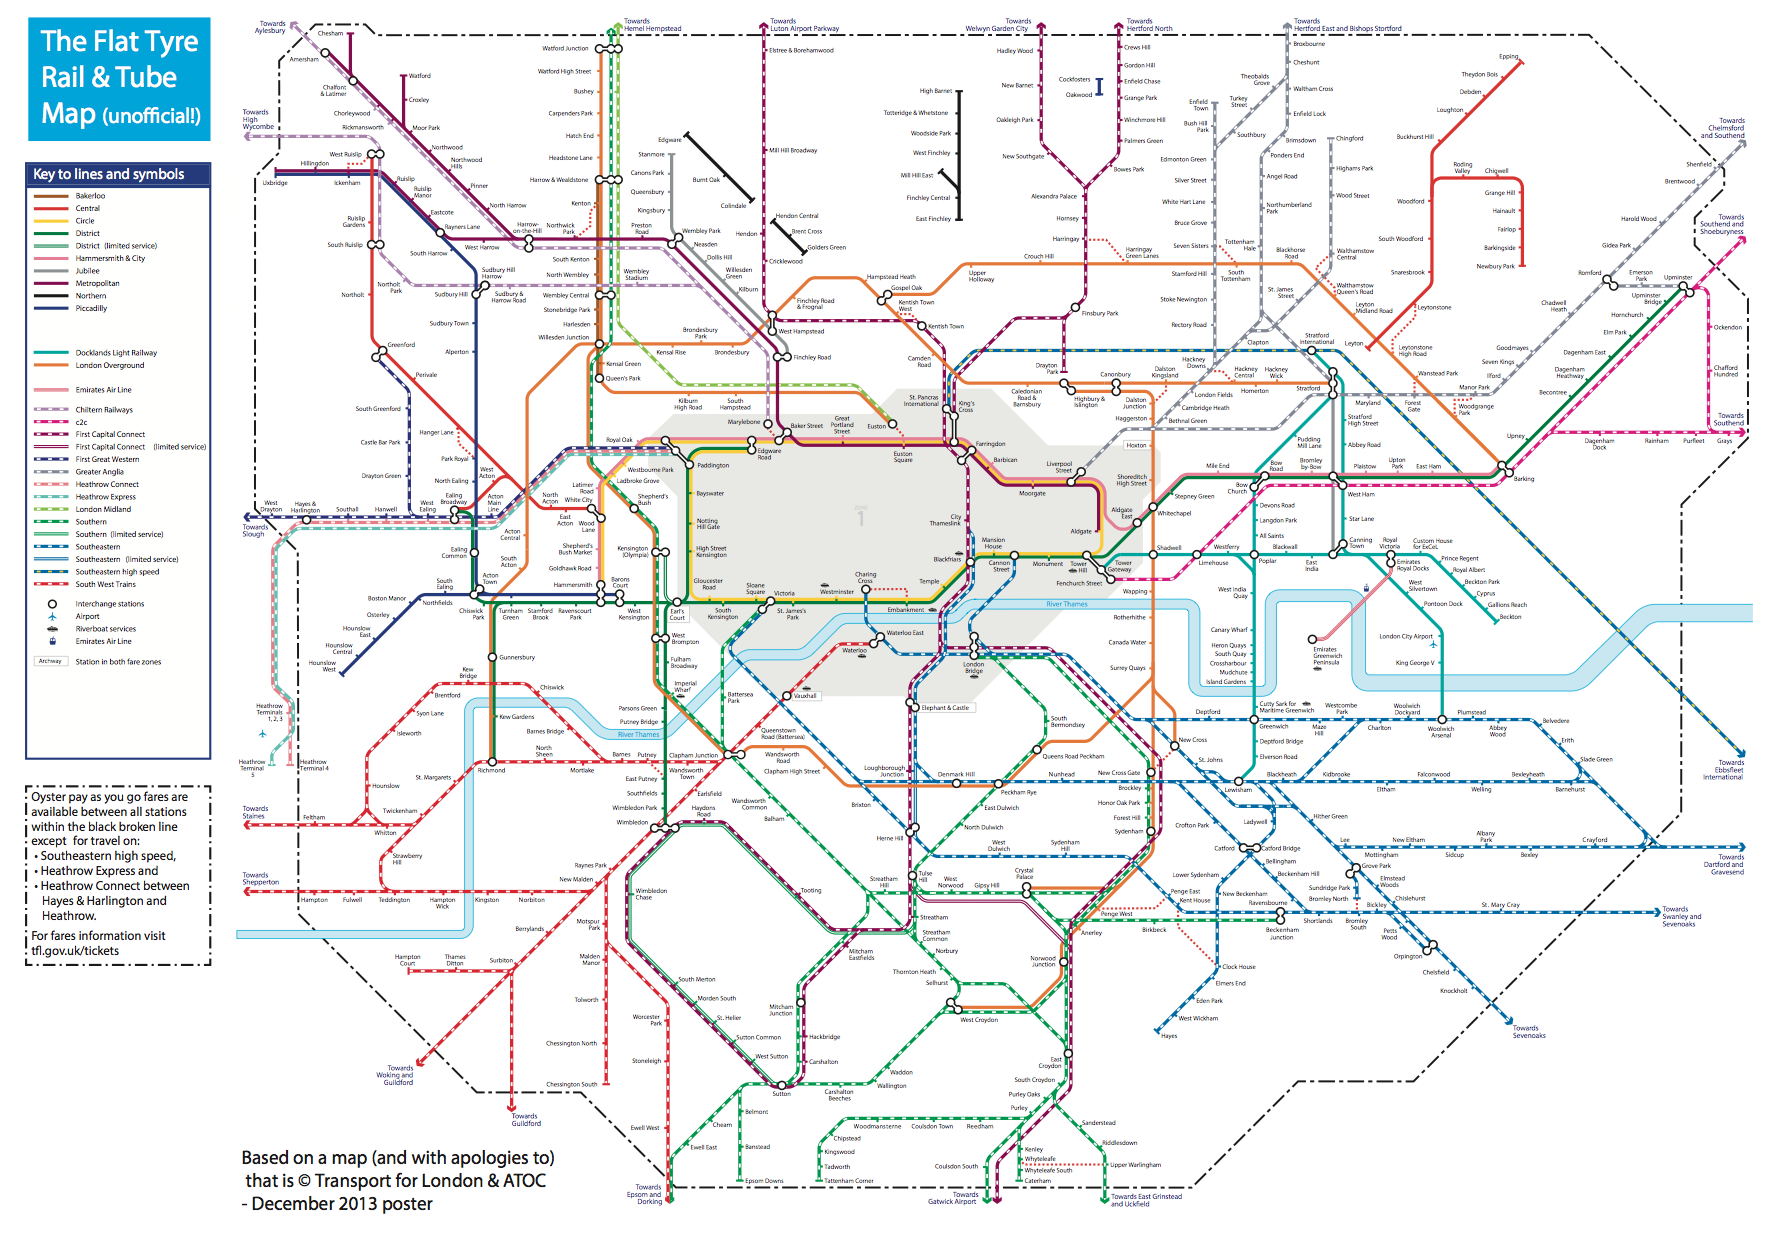 The Flat Tyre Tube Map Suprageography